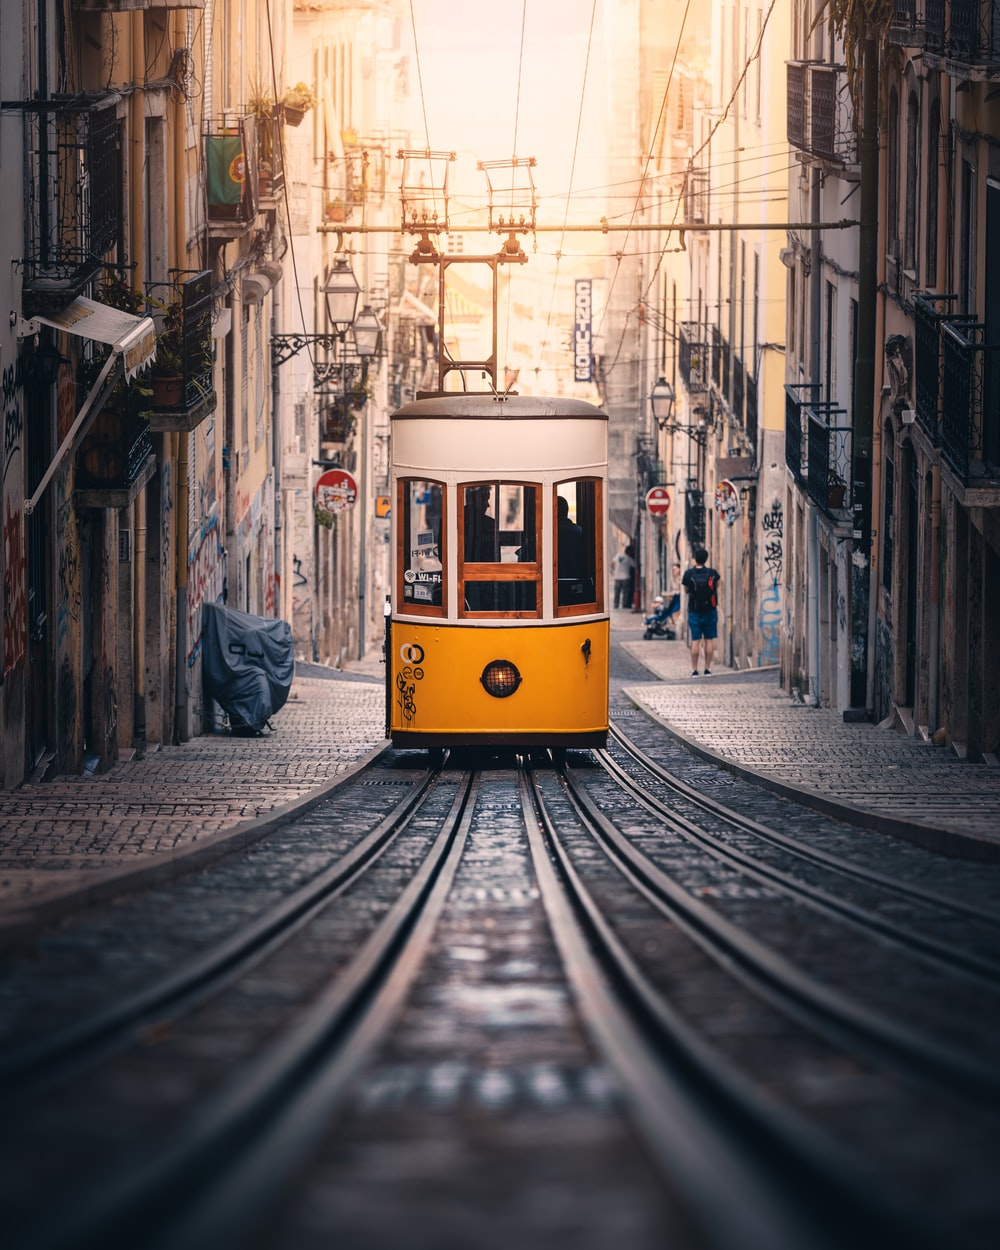 photography of yellow tram traveling on road during daytime